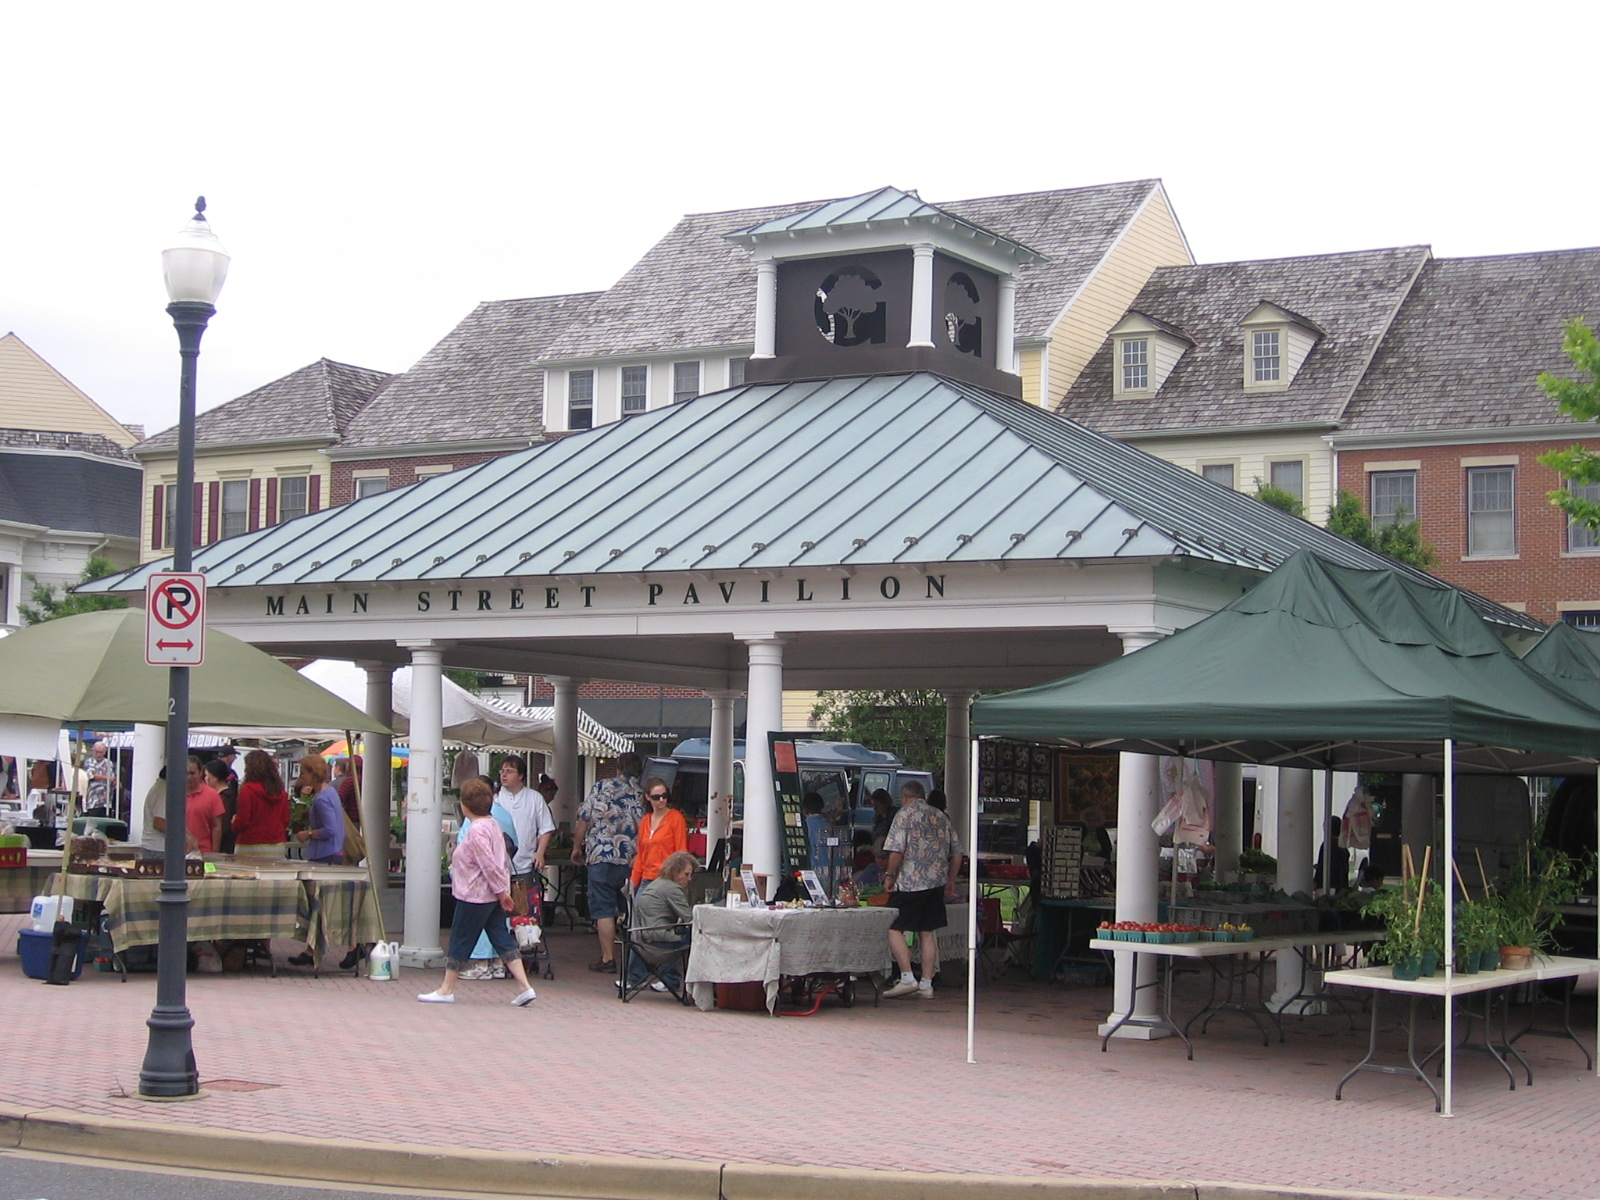 Kentlands Farmers Market Gaithersburg Md Image